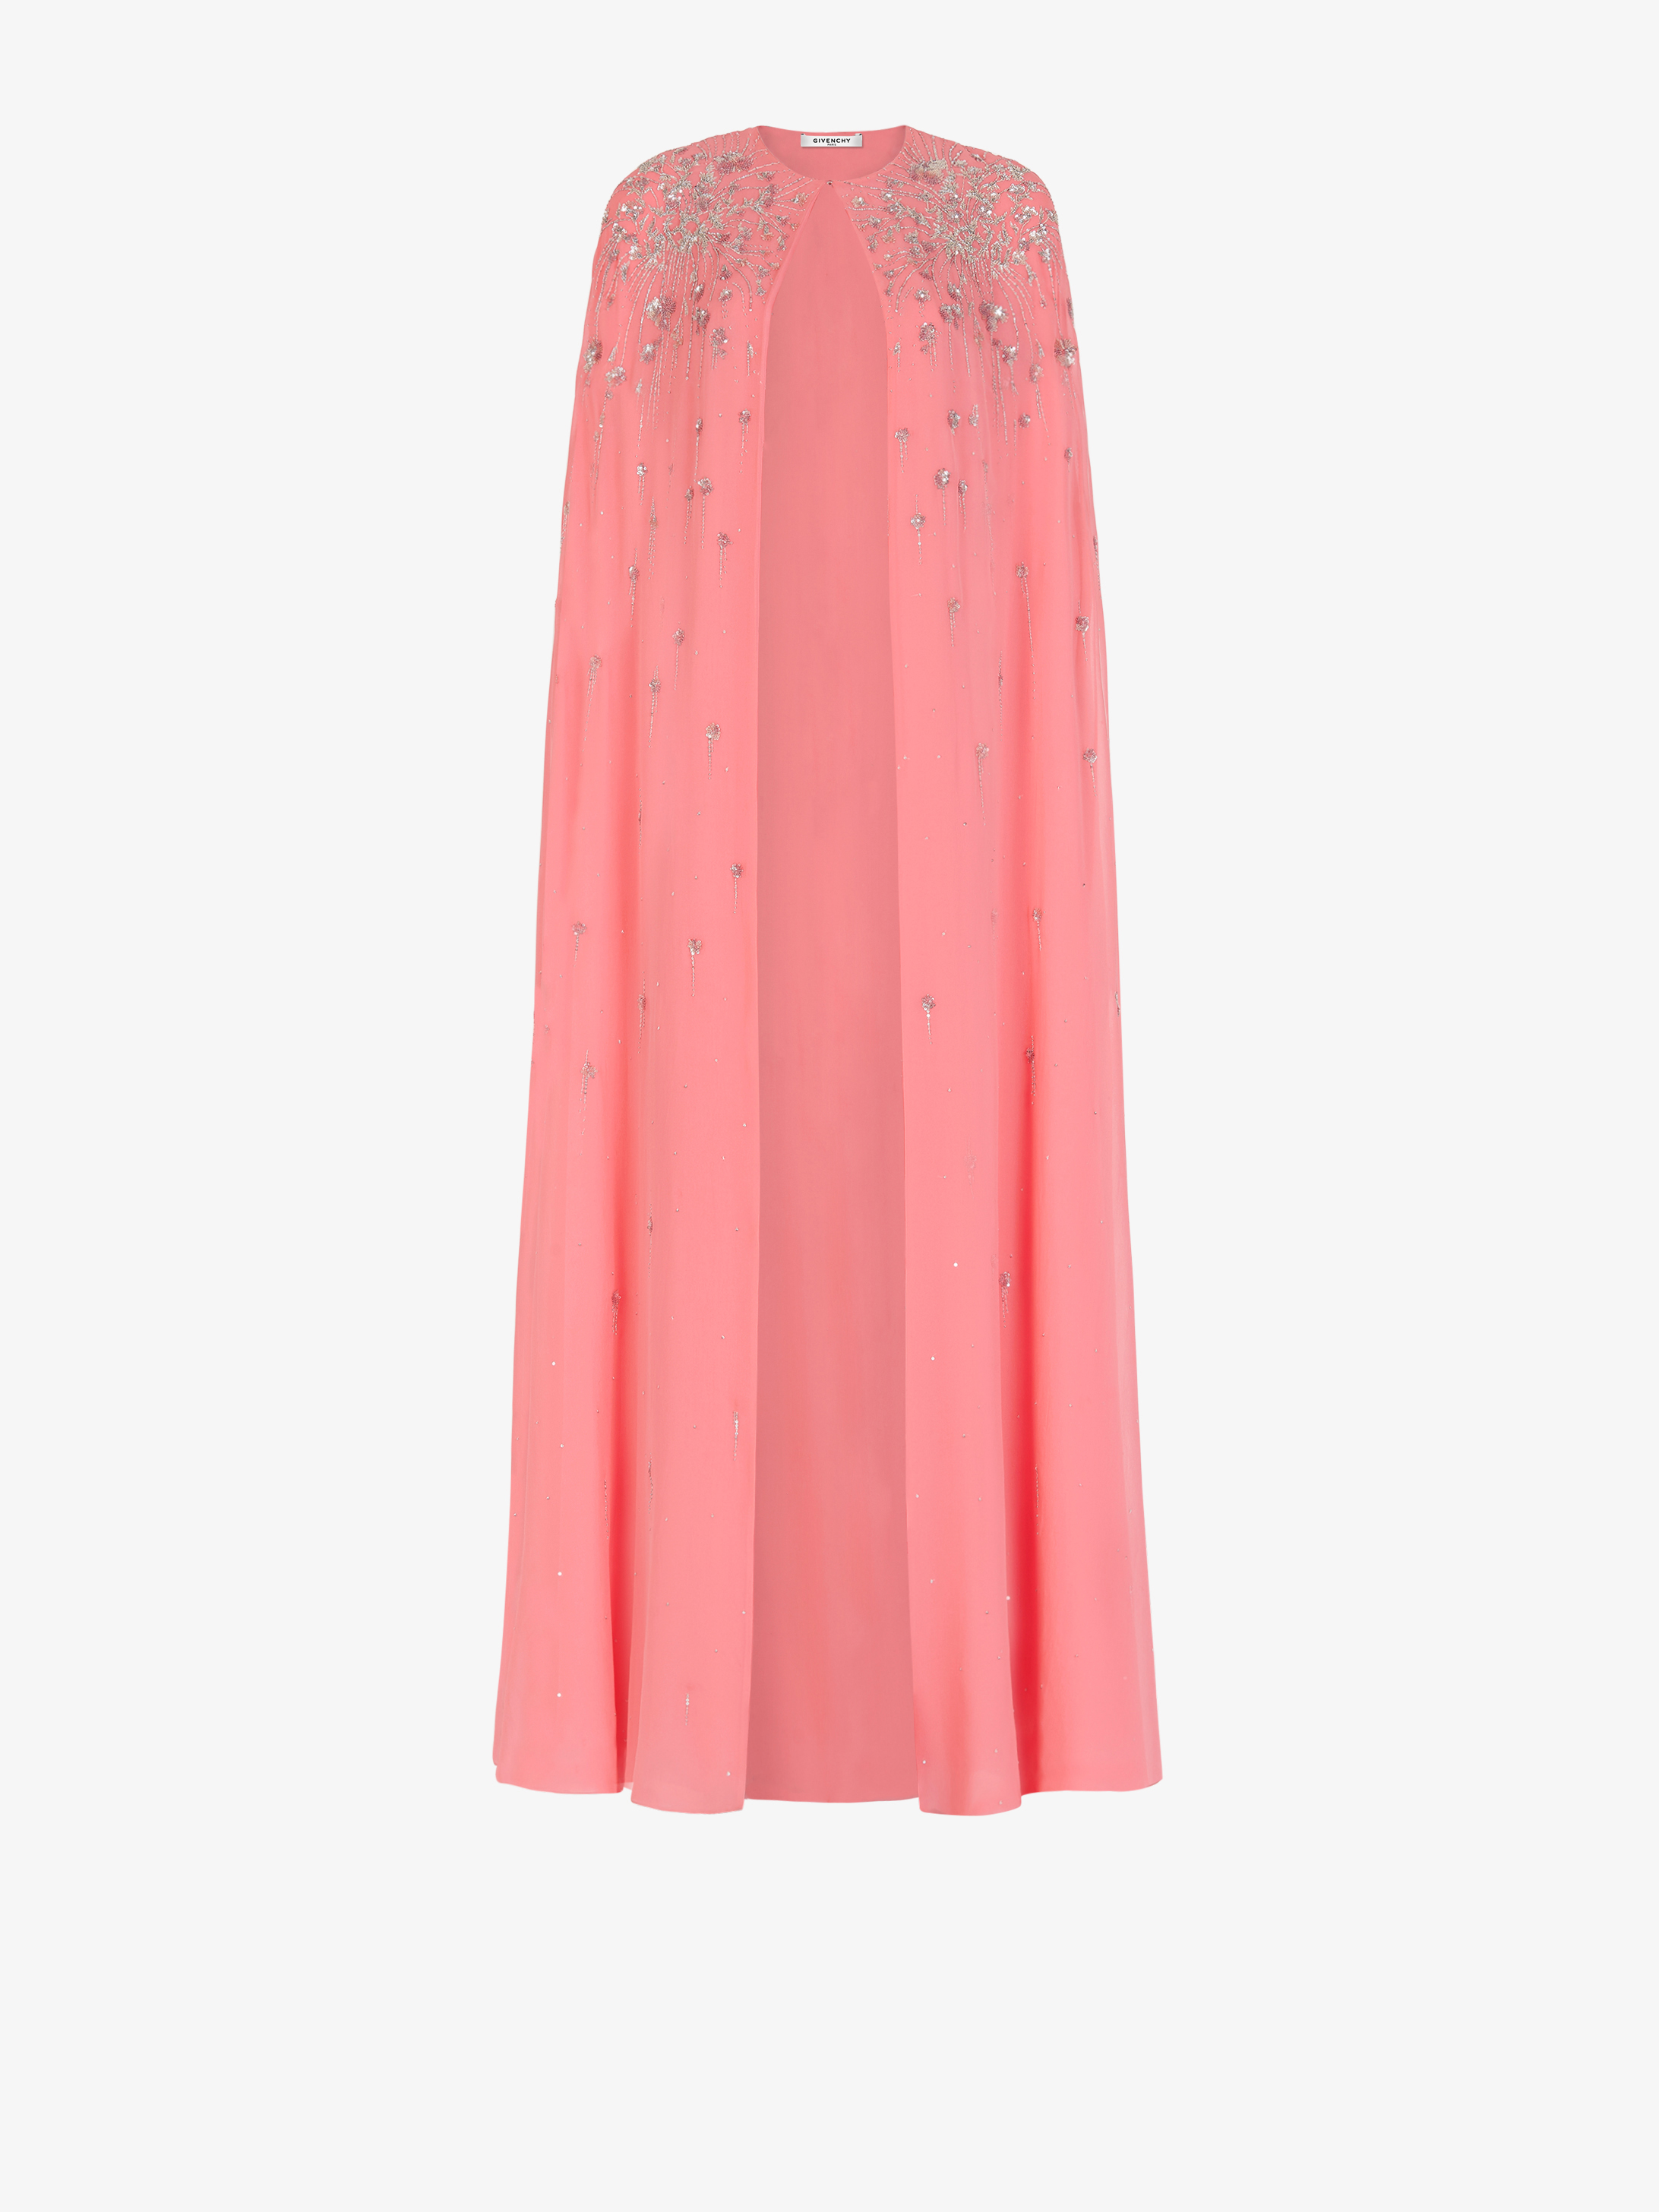 Sequins embroidered evening cape